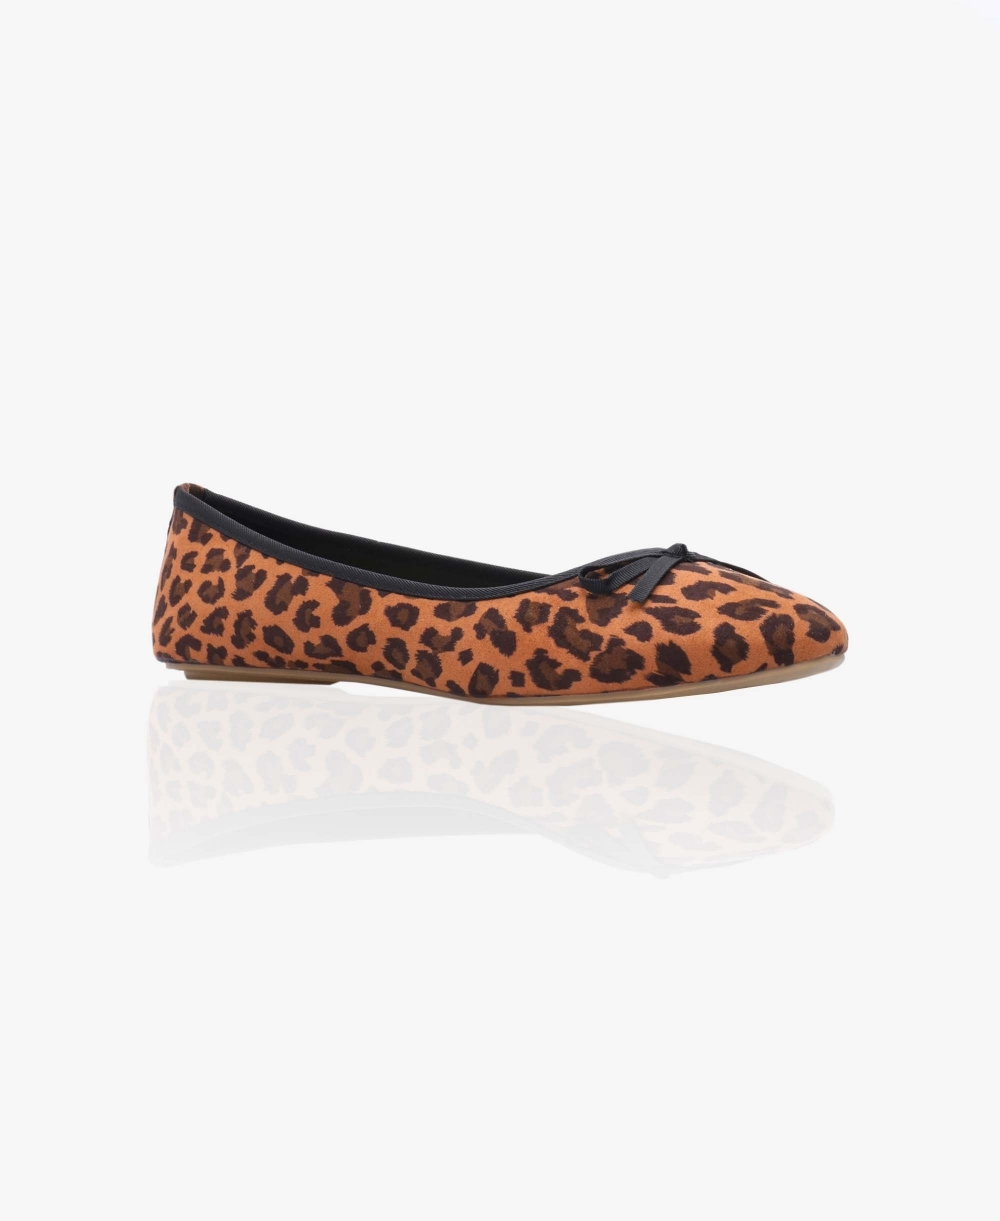 detailed look 060b8 db8a2 Faux Suede Leopard Ballerina Pumps